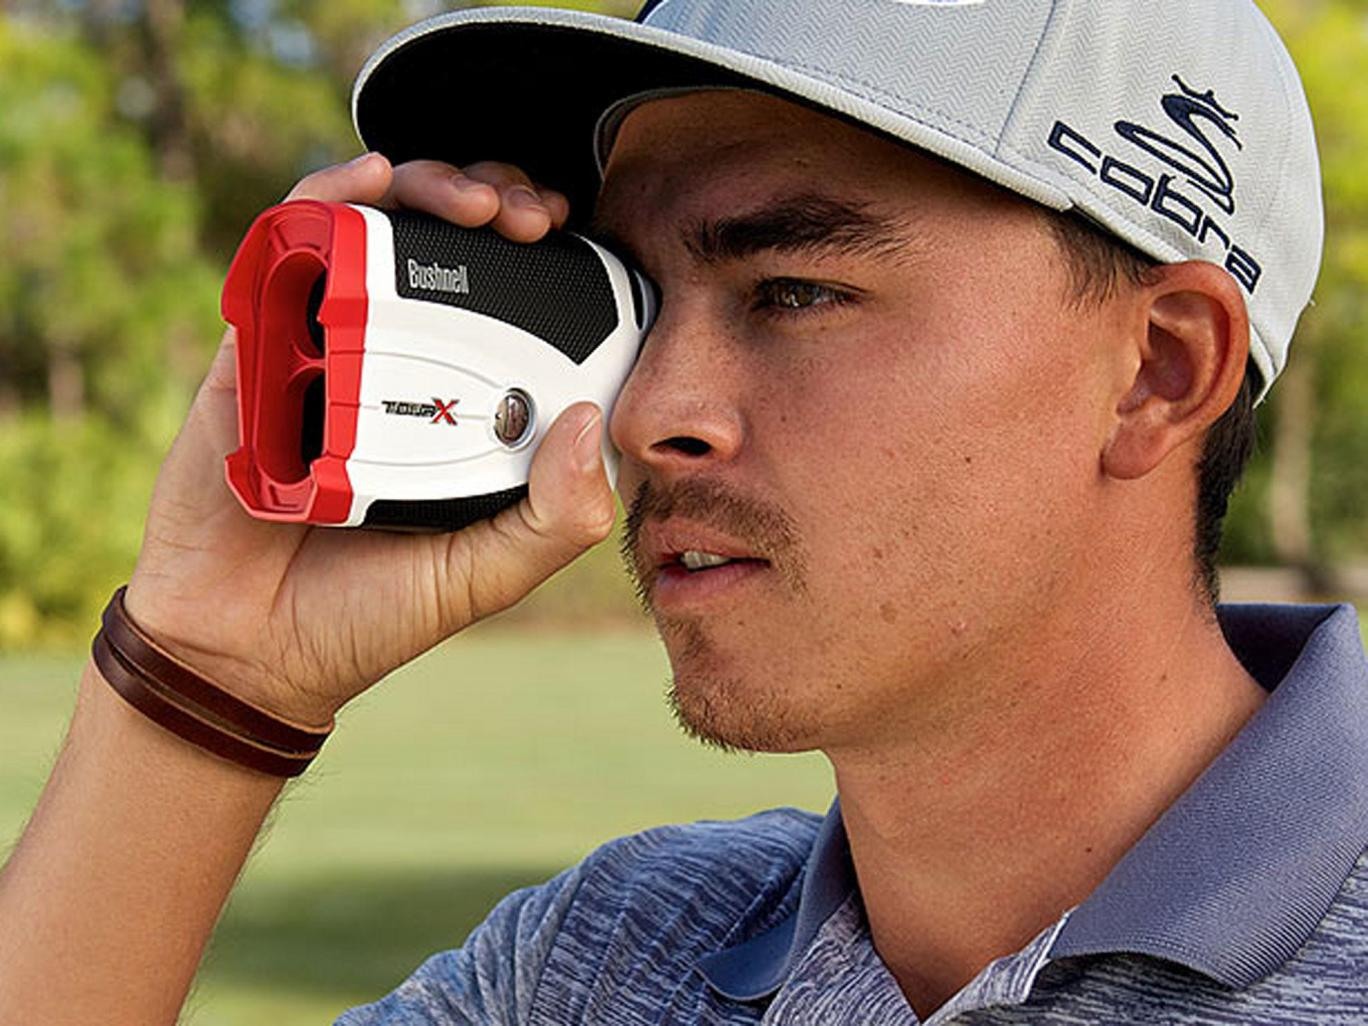 Best Golf Range Finders Available Right Now